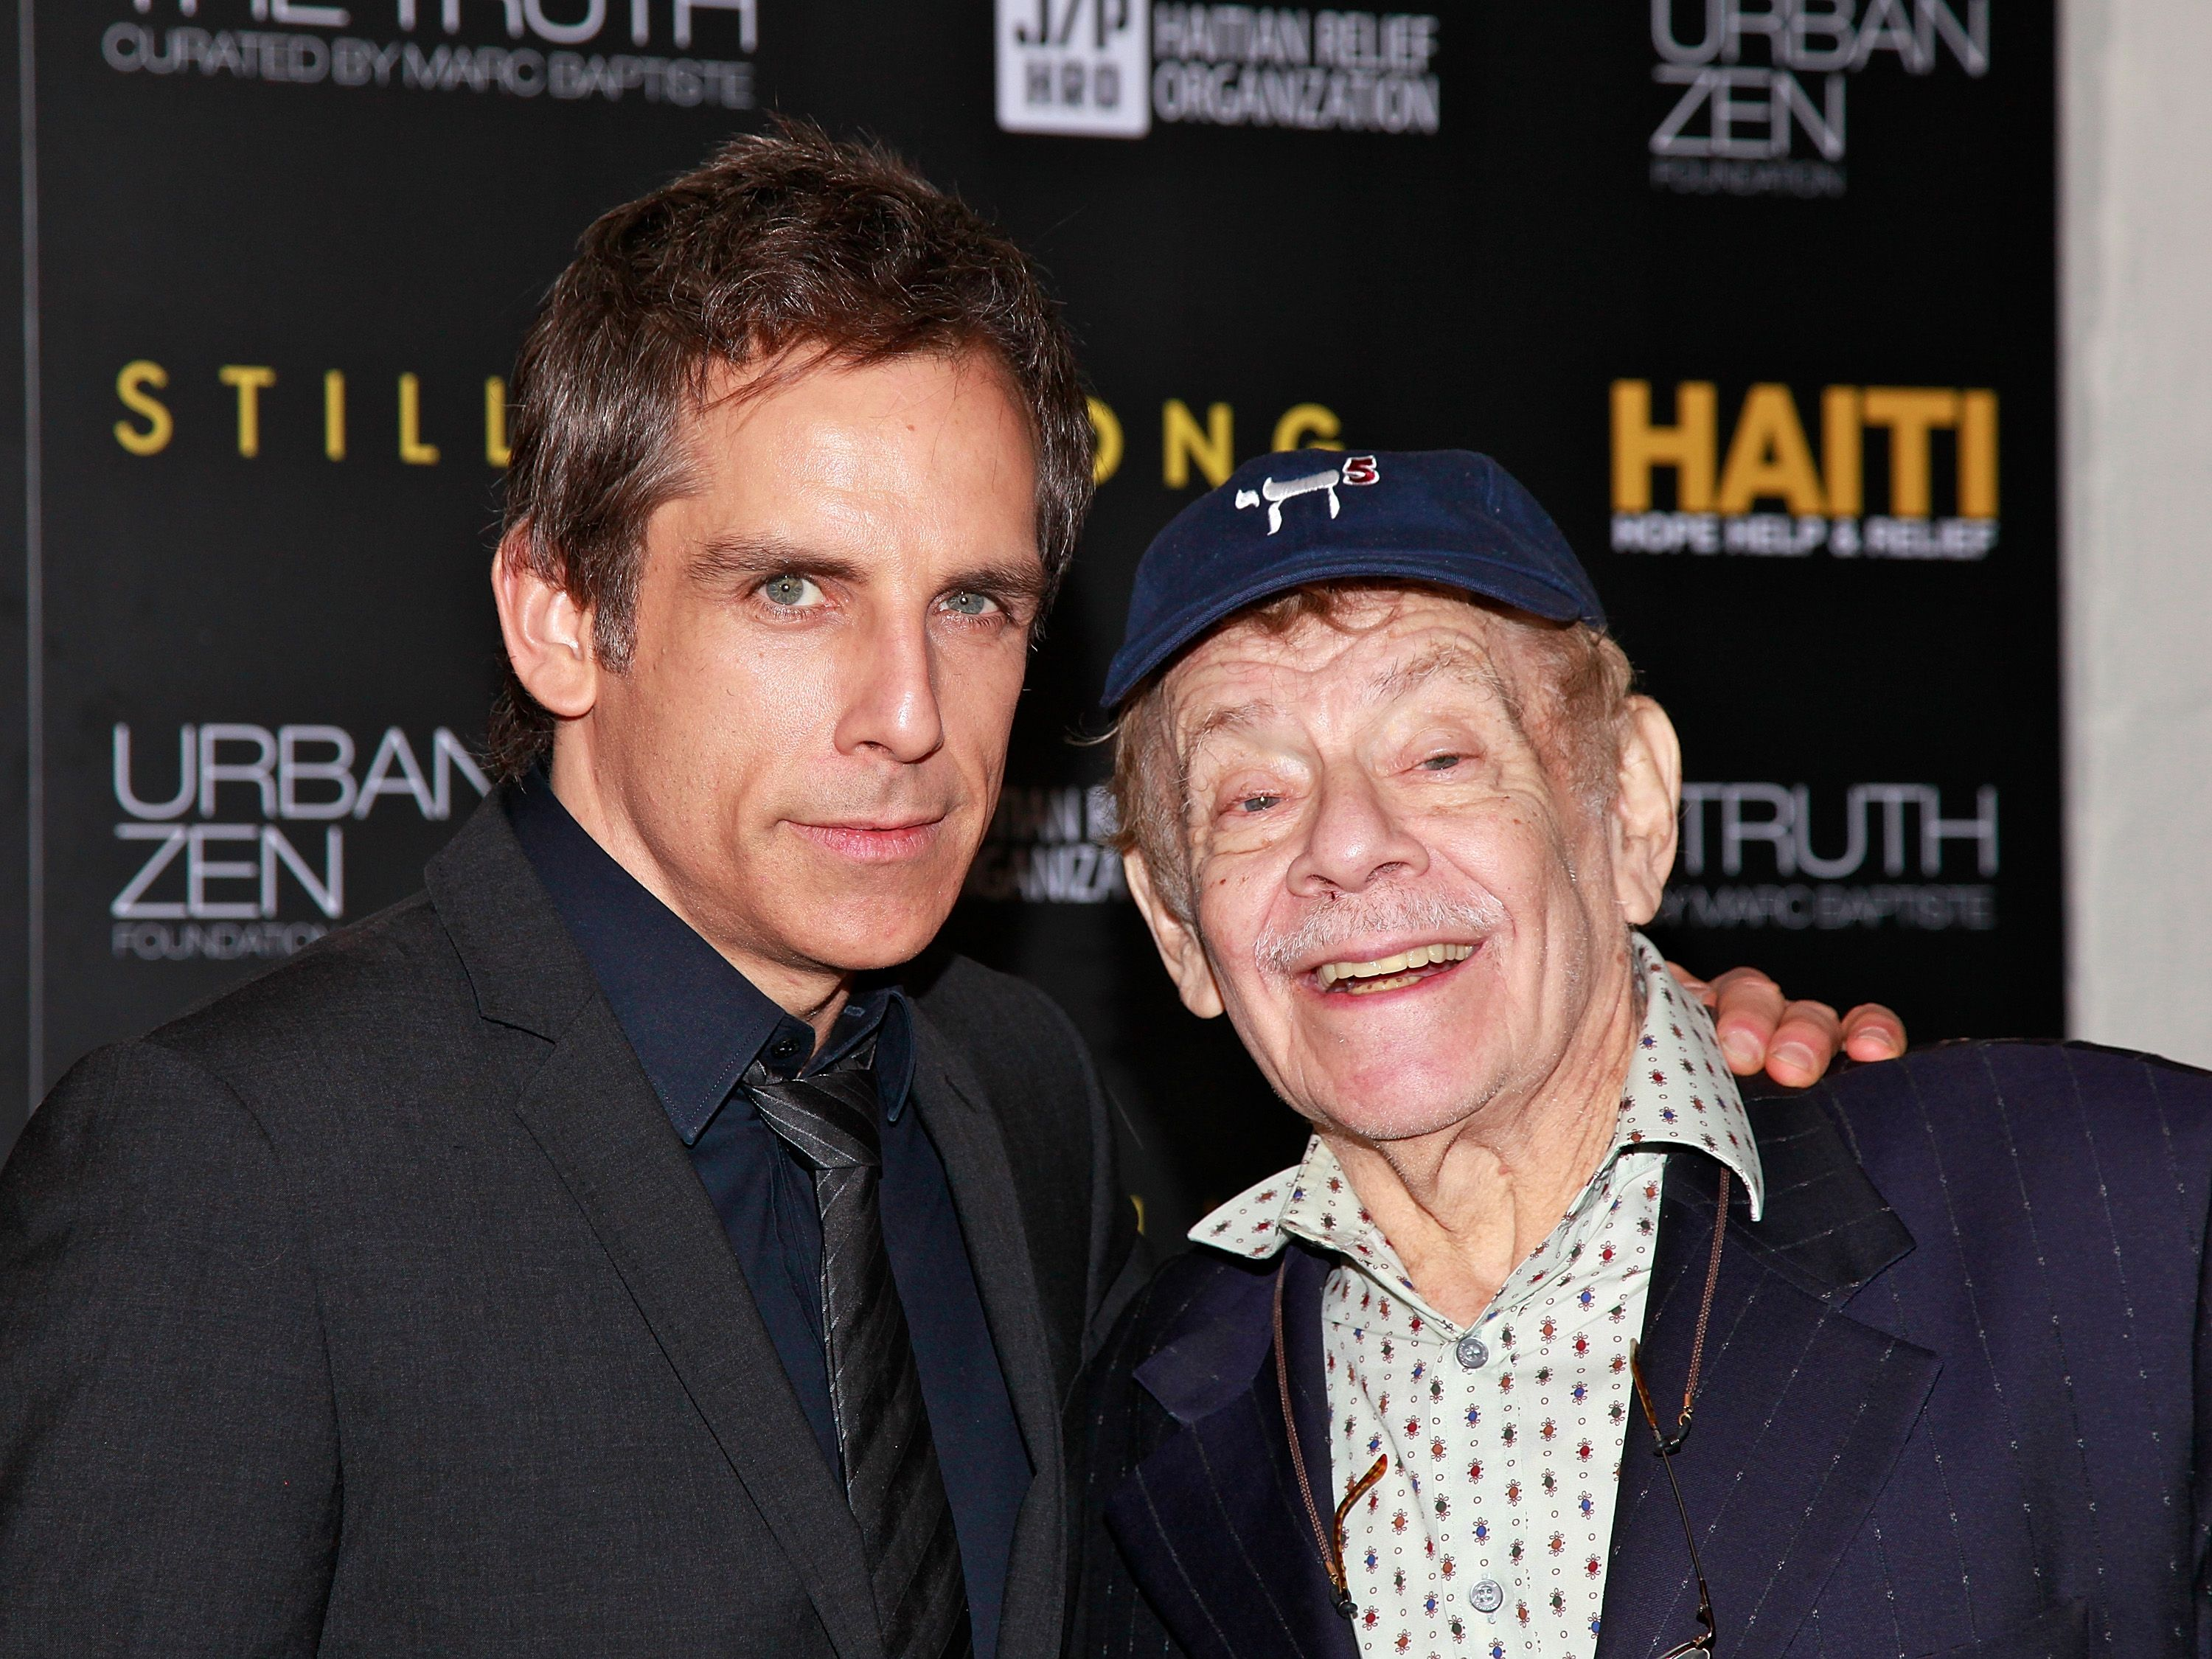 Ben Stiller and Jerry Stiller arrive at the HELP HAITI - Urban Zen HHRH & The Stiller Foundation Honoring Sean Penn at the Urban Zen Center At Stephan Weiss Studio on February 11, 2011 in New York City. | Source: Getty Images